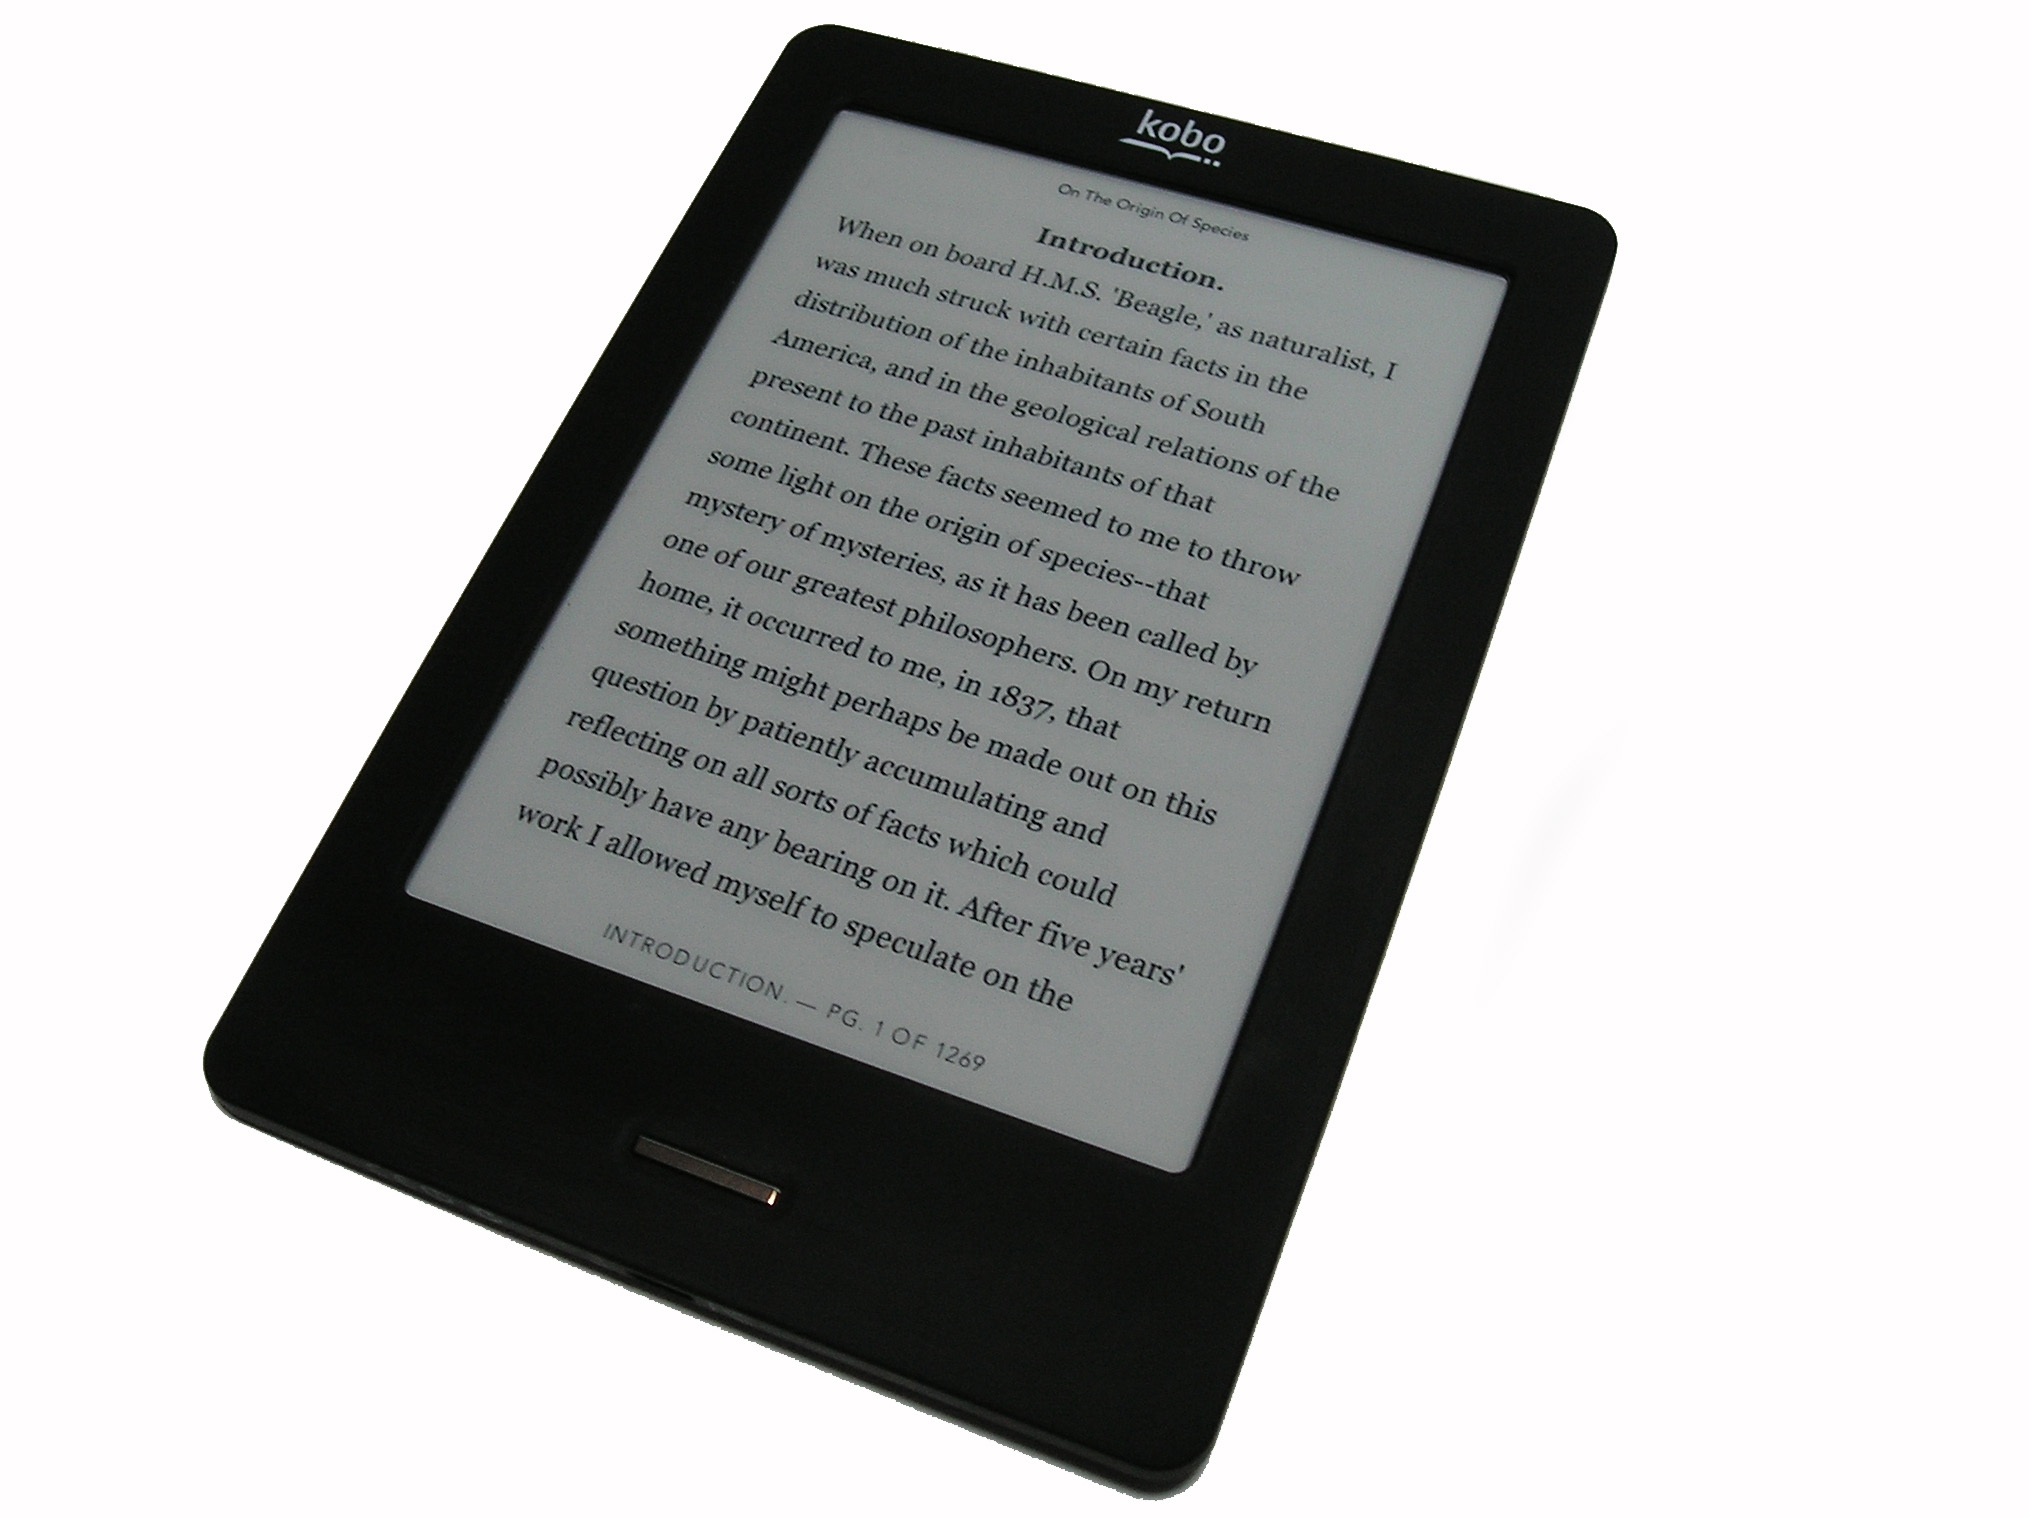 free ebooks for kobo touch ereader